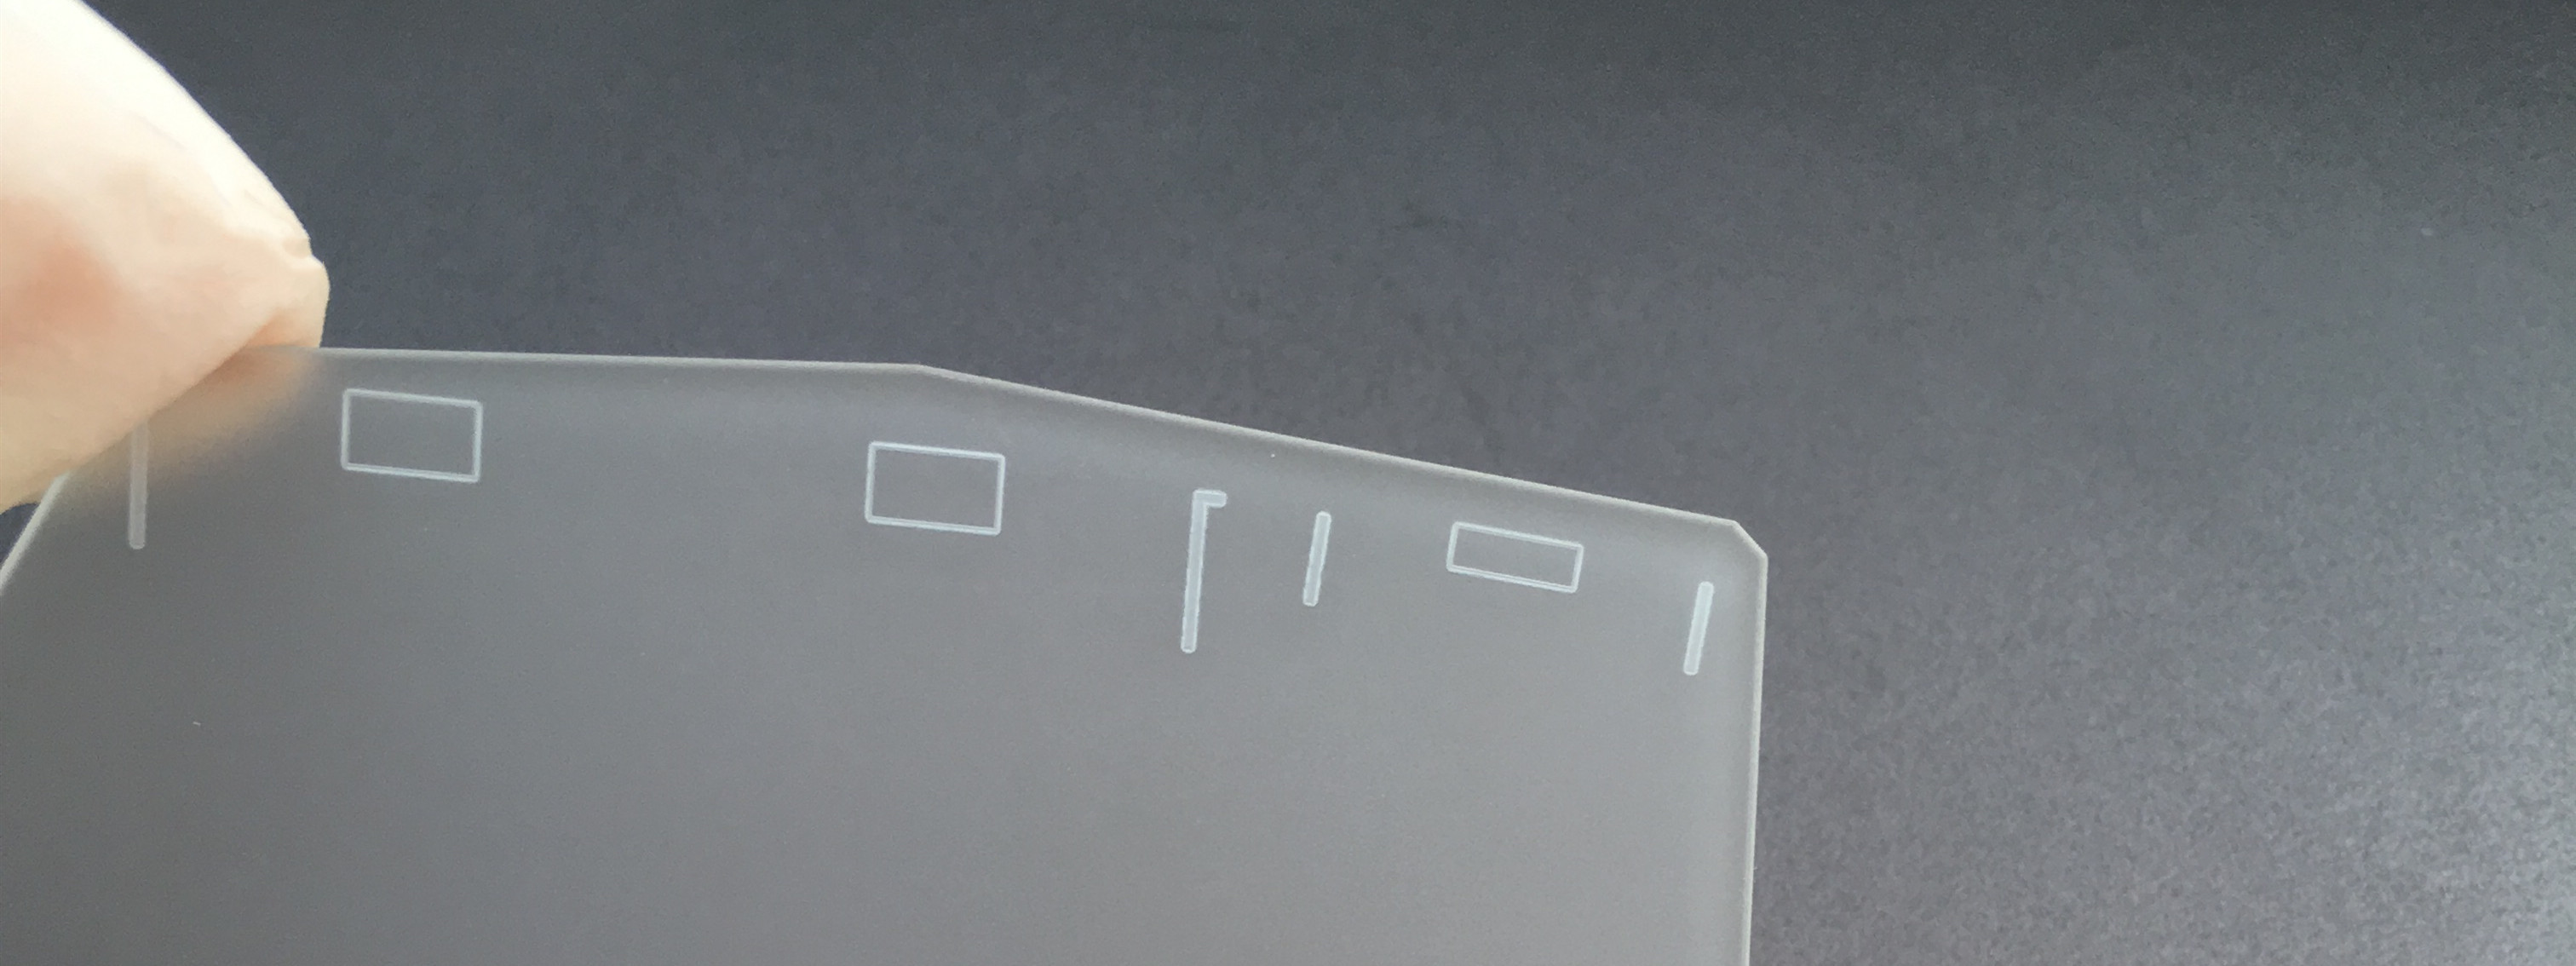 Glass micromachining including glass sand-blasting and cutting, engraving